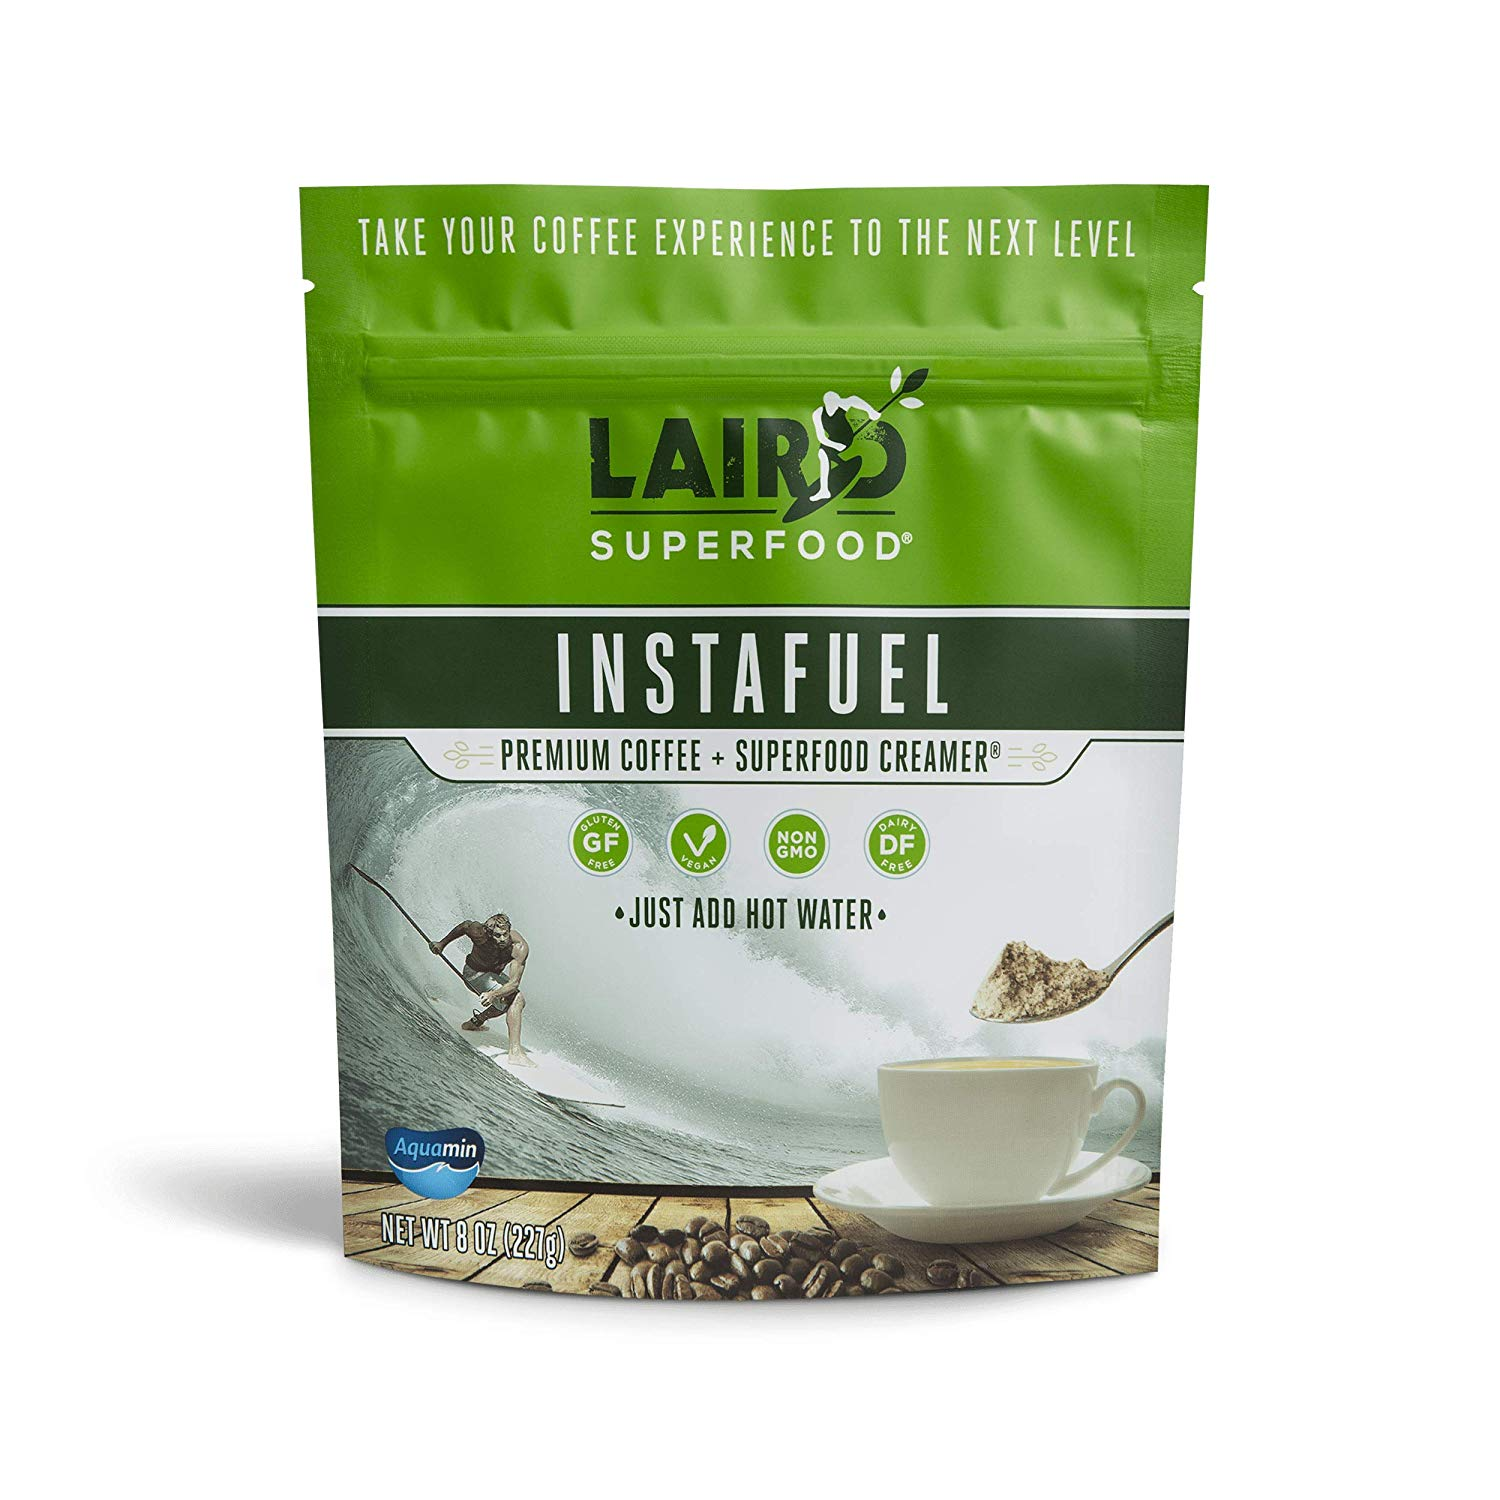 Laird Superfood Instafuel Premium Instant Coffee | Premium Arabica Coffee with Superfood Original Creamer Added | Non-Dairy | Organic | Gluten Free | Vegan - 1 lb Bag